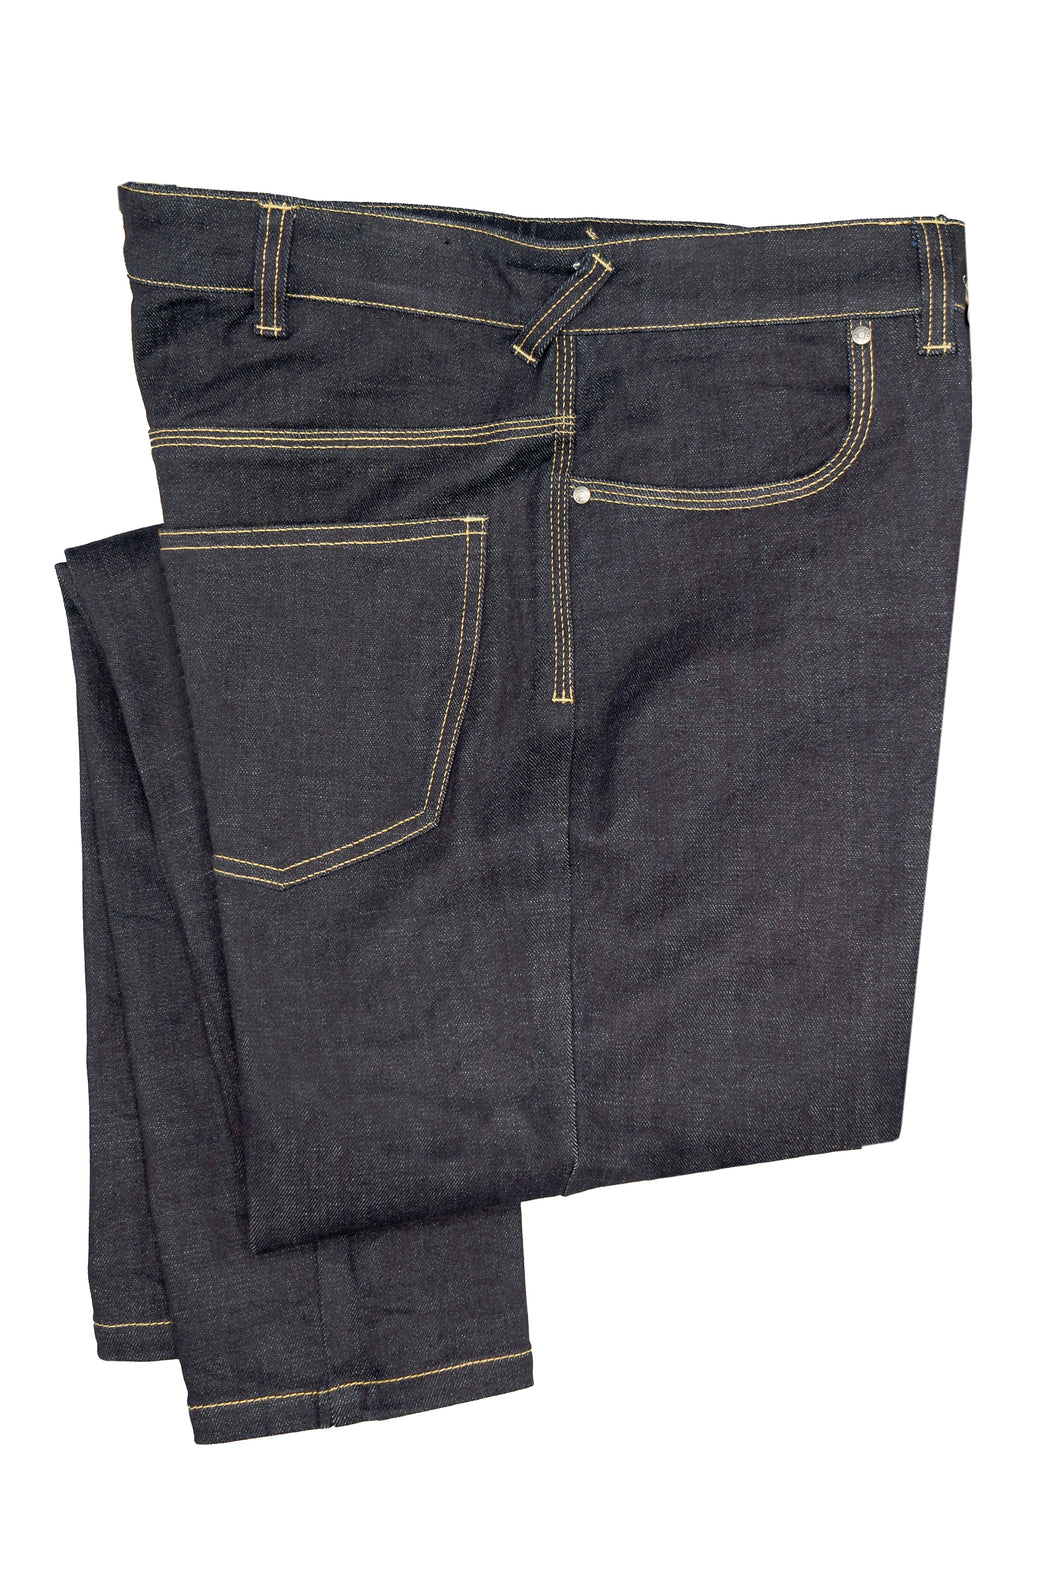 Cutler & Co. Tanner Trouser | Shop at Wallace and Gibbs NZ